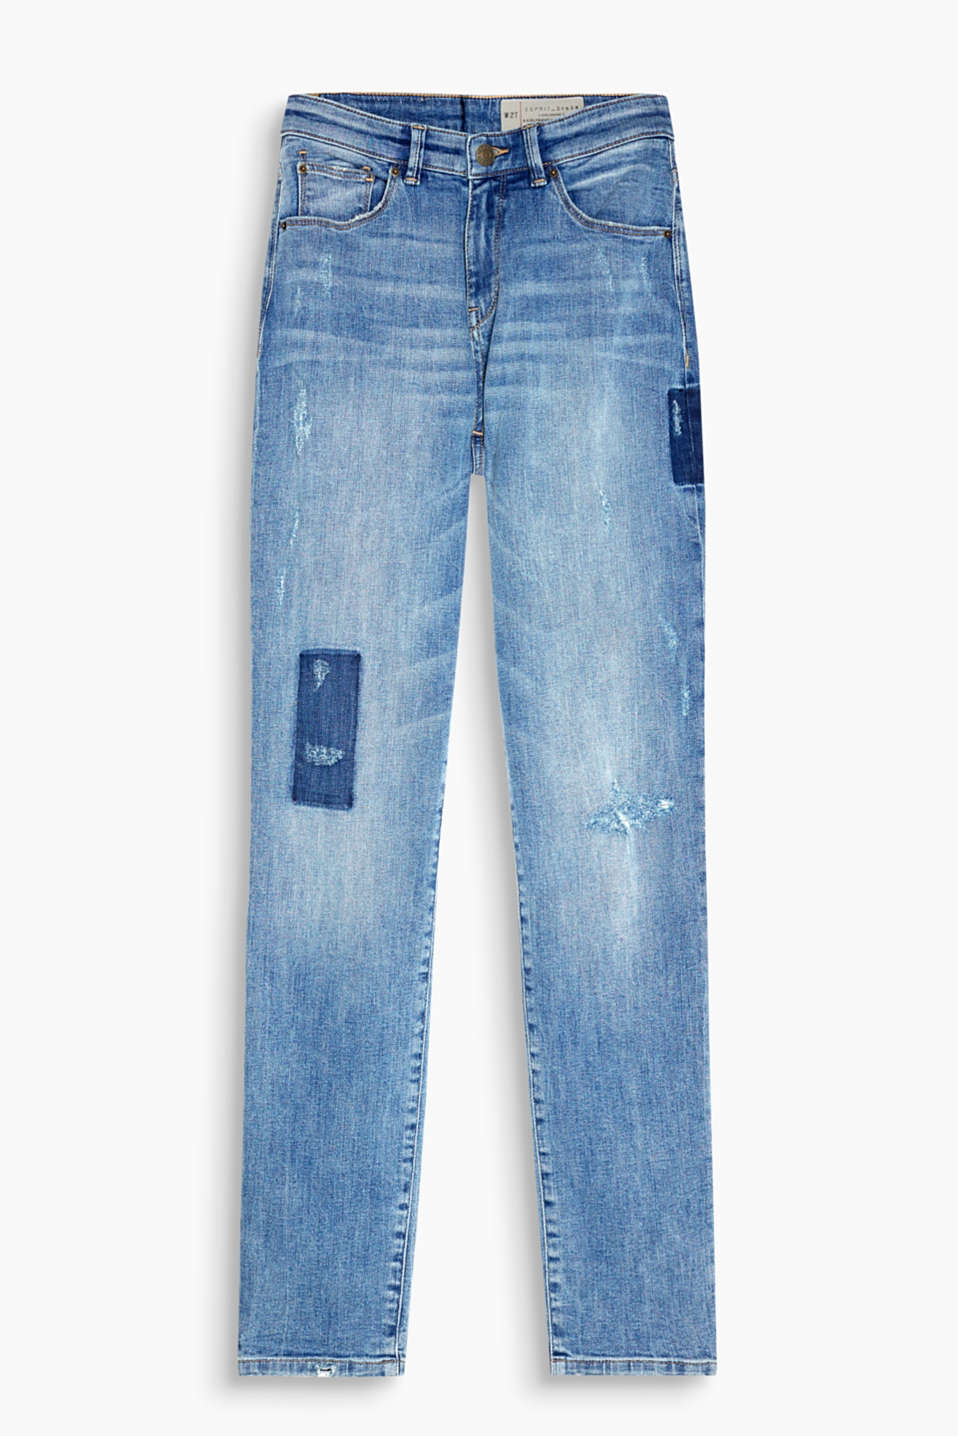 Girlfriend jeans with intense vintage effects and added stretch for comfort